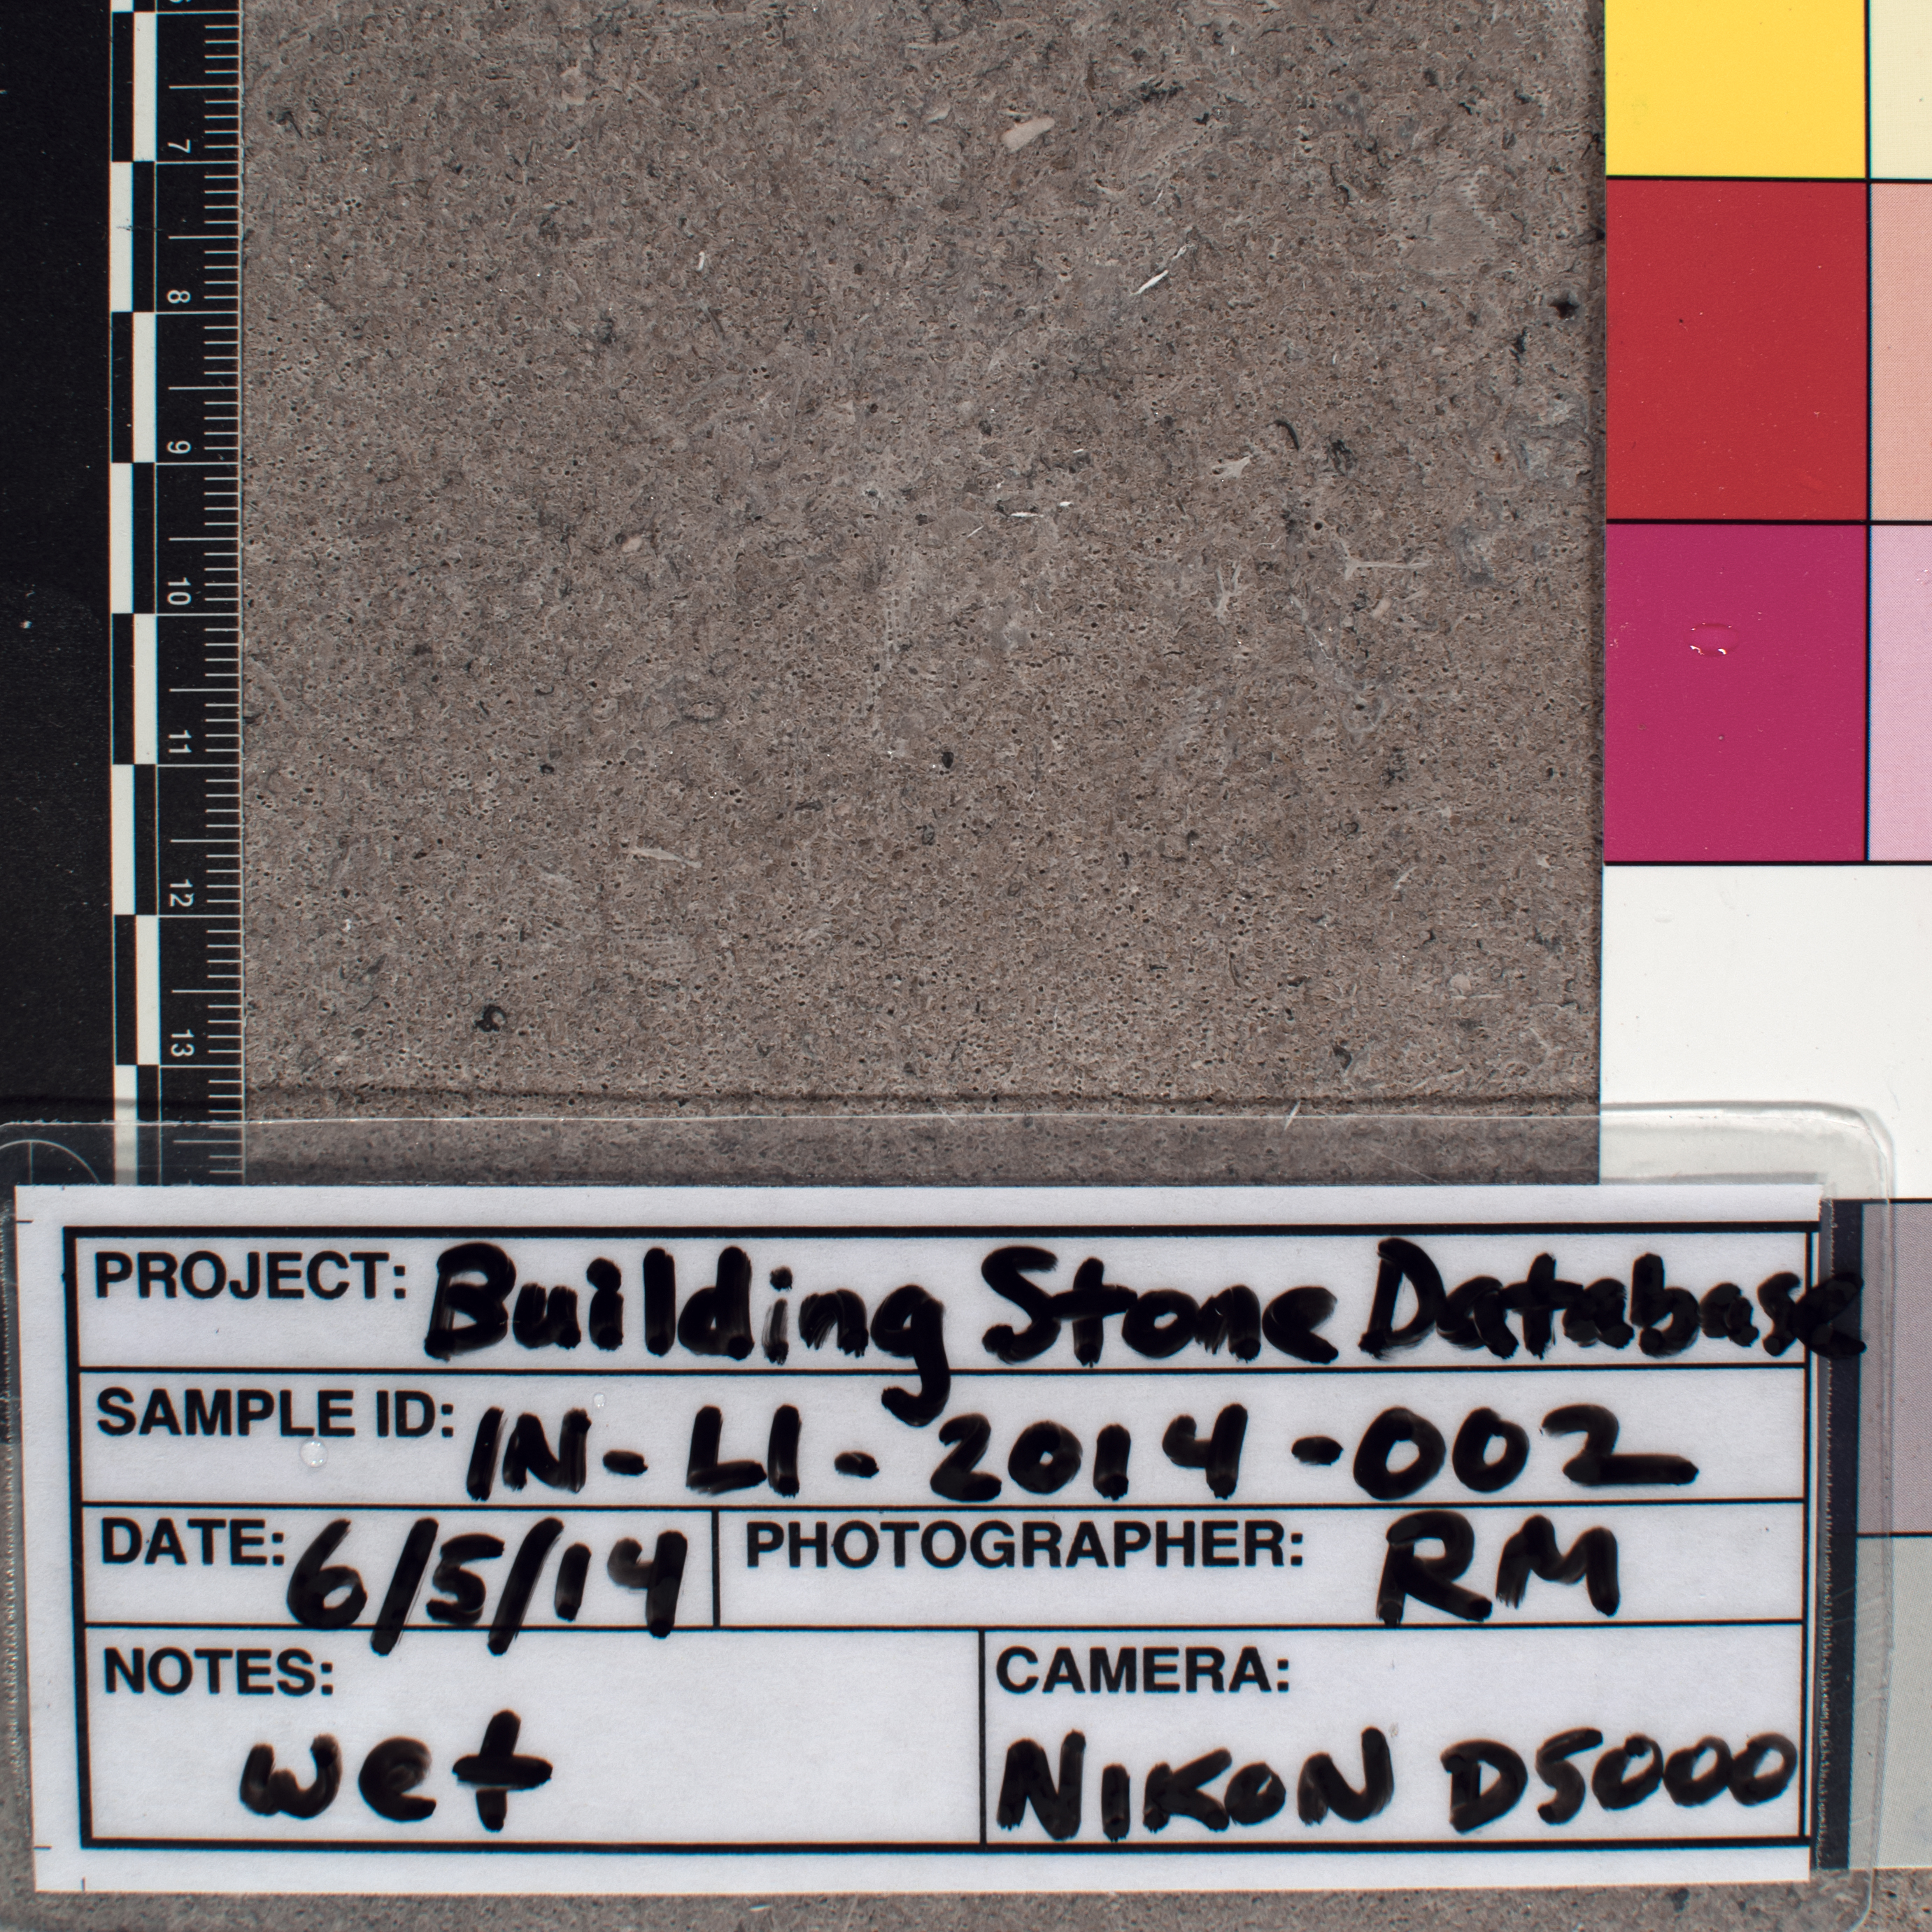 Close-up image of specimen in wet conditions. Finish: Smooth sawn